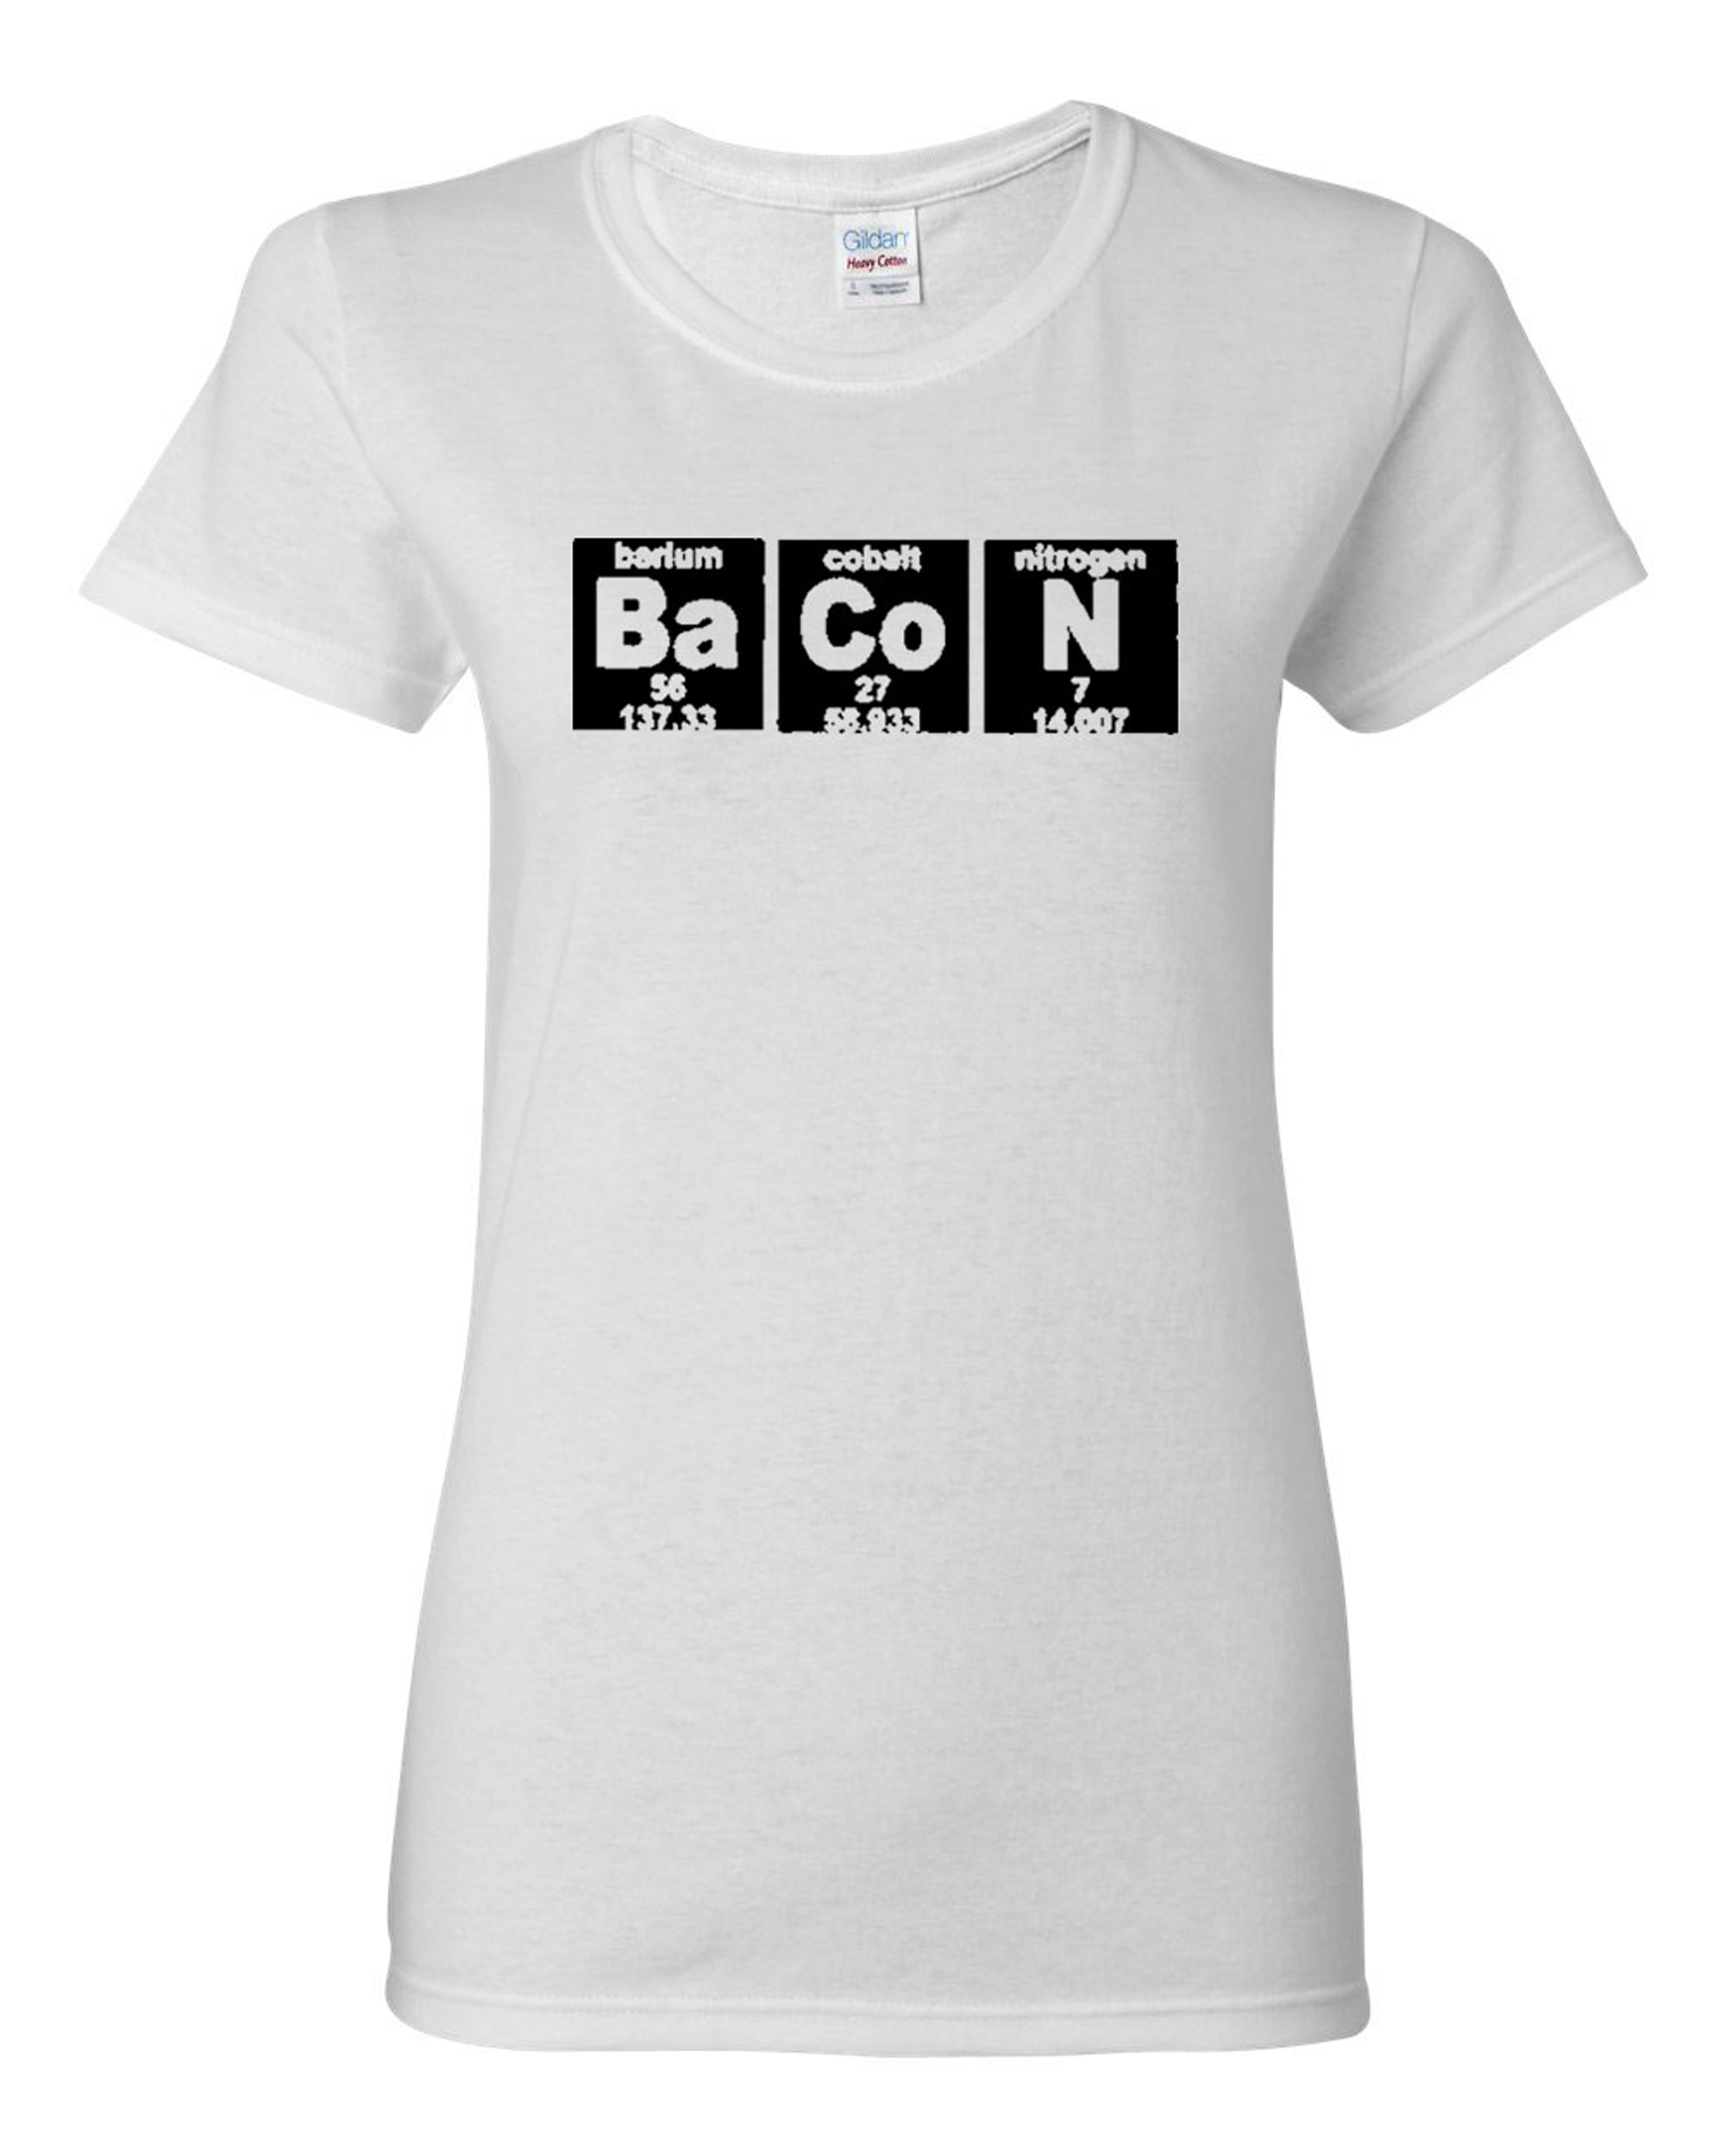 Ladies Bacon Strips Elements Chemistry Funny Humor T-Shirt Tee